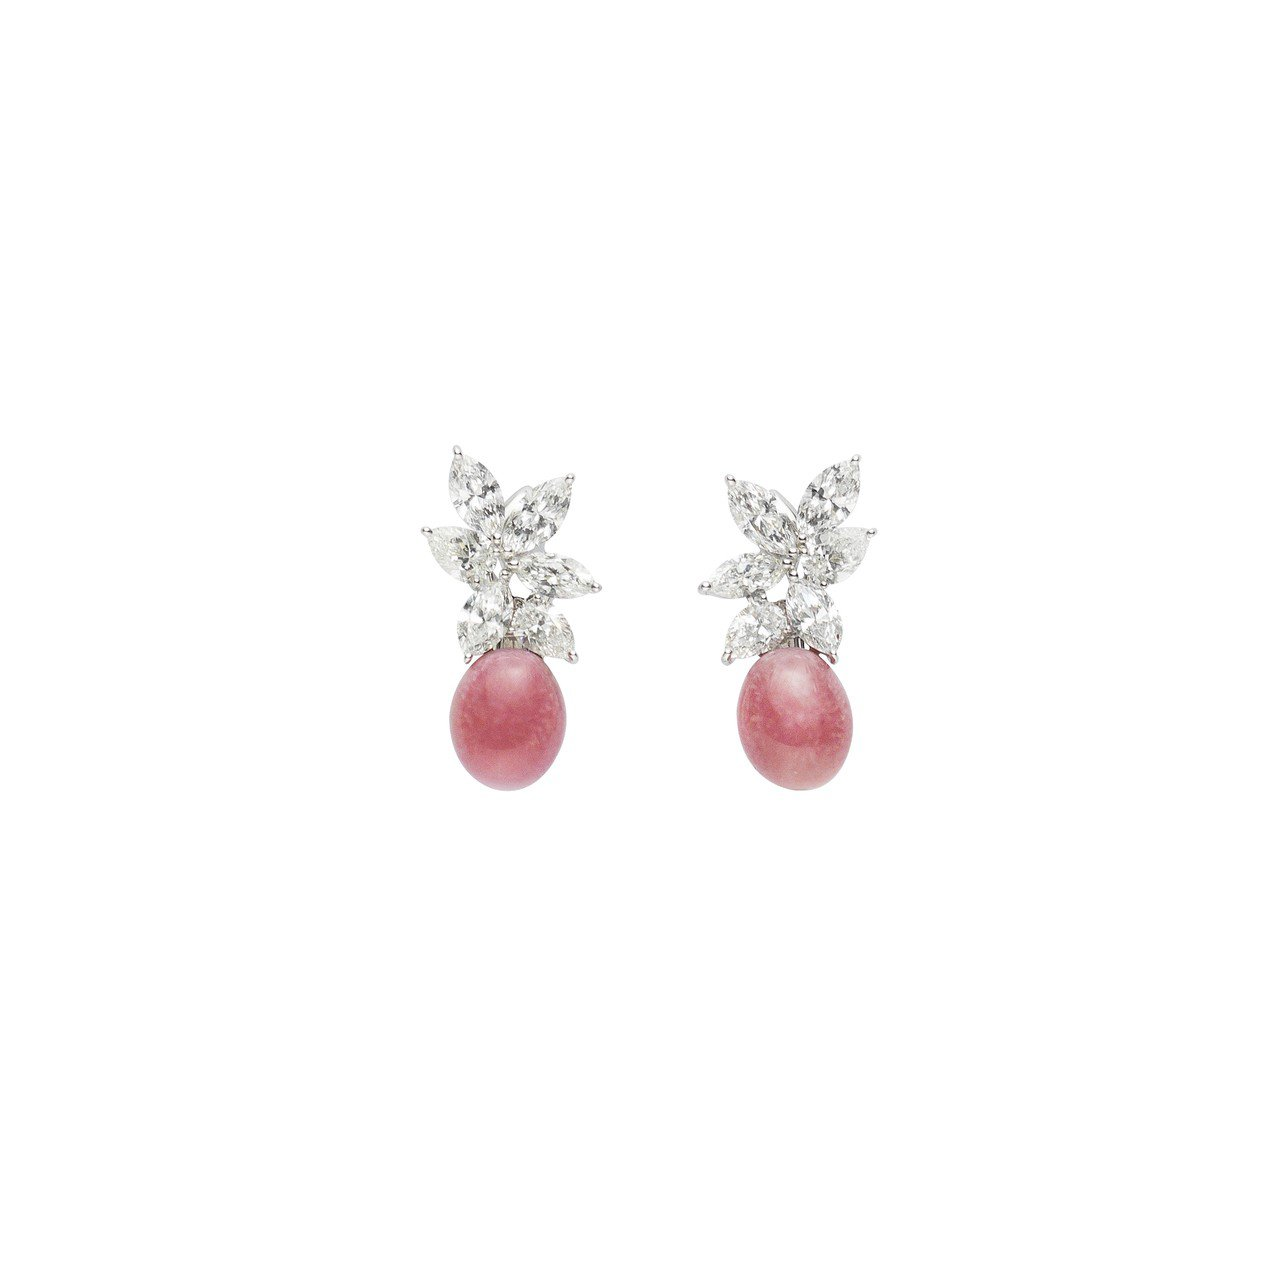 MIKIMOTO Natural Pearl頂級珠寶系列Queen Conch孔...